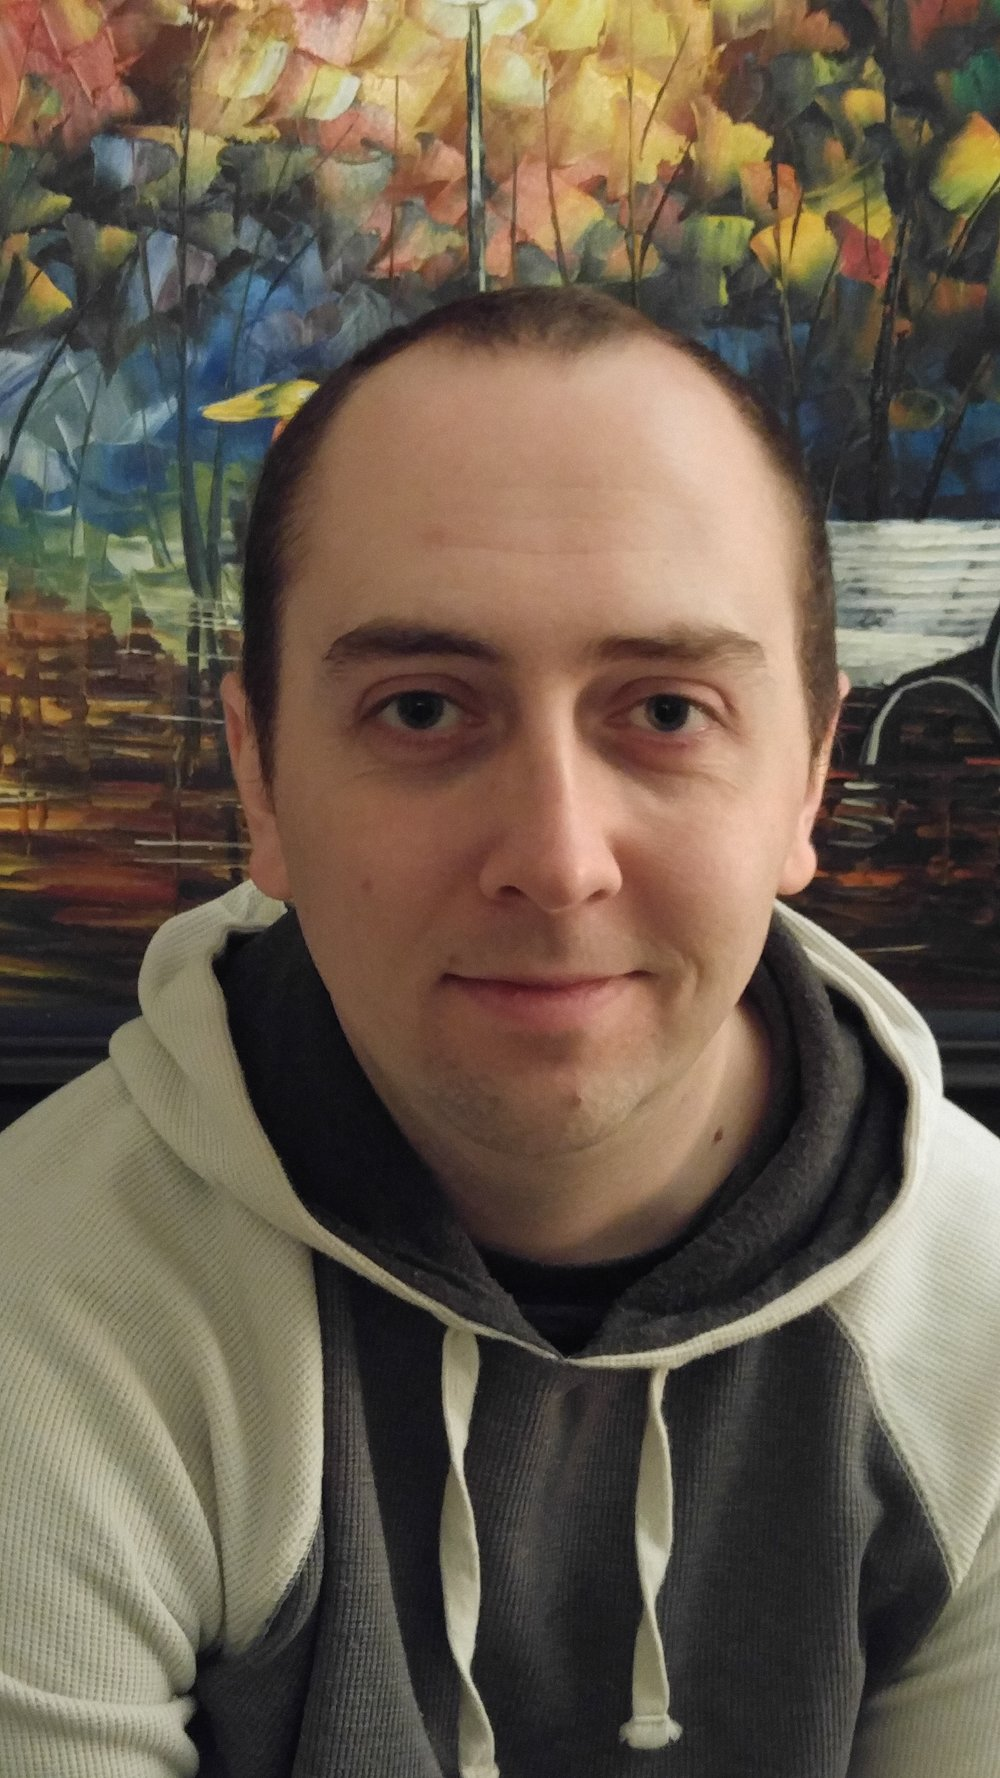 CHRIS NELSON - Director/Editor/Writer    Chris Nelson has worked in Edmonton as a writer, film maker and stage manager for over a decade. With the company Liquid Trout Productions he has written, produced and starred in productions such as movies, sketch comedy shows and live events. As a stage manager he has worked on dozens of productions, for companies like Shadow Theatre and Atlas Theatre. He is also a writer and designer on video games that are currently in production and you can see his photos by searching for Chris Nelson Photography.